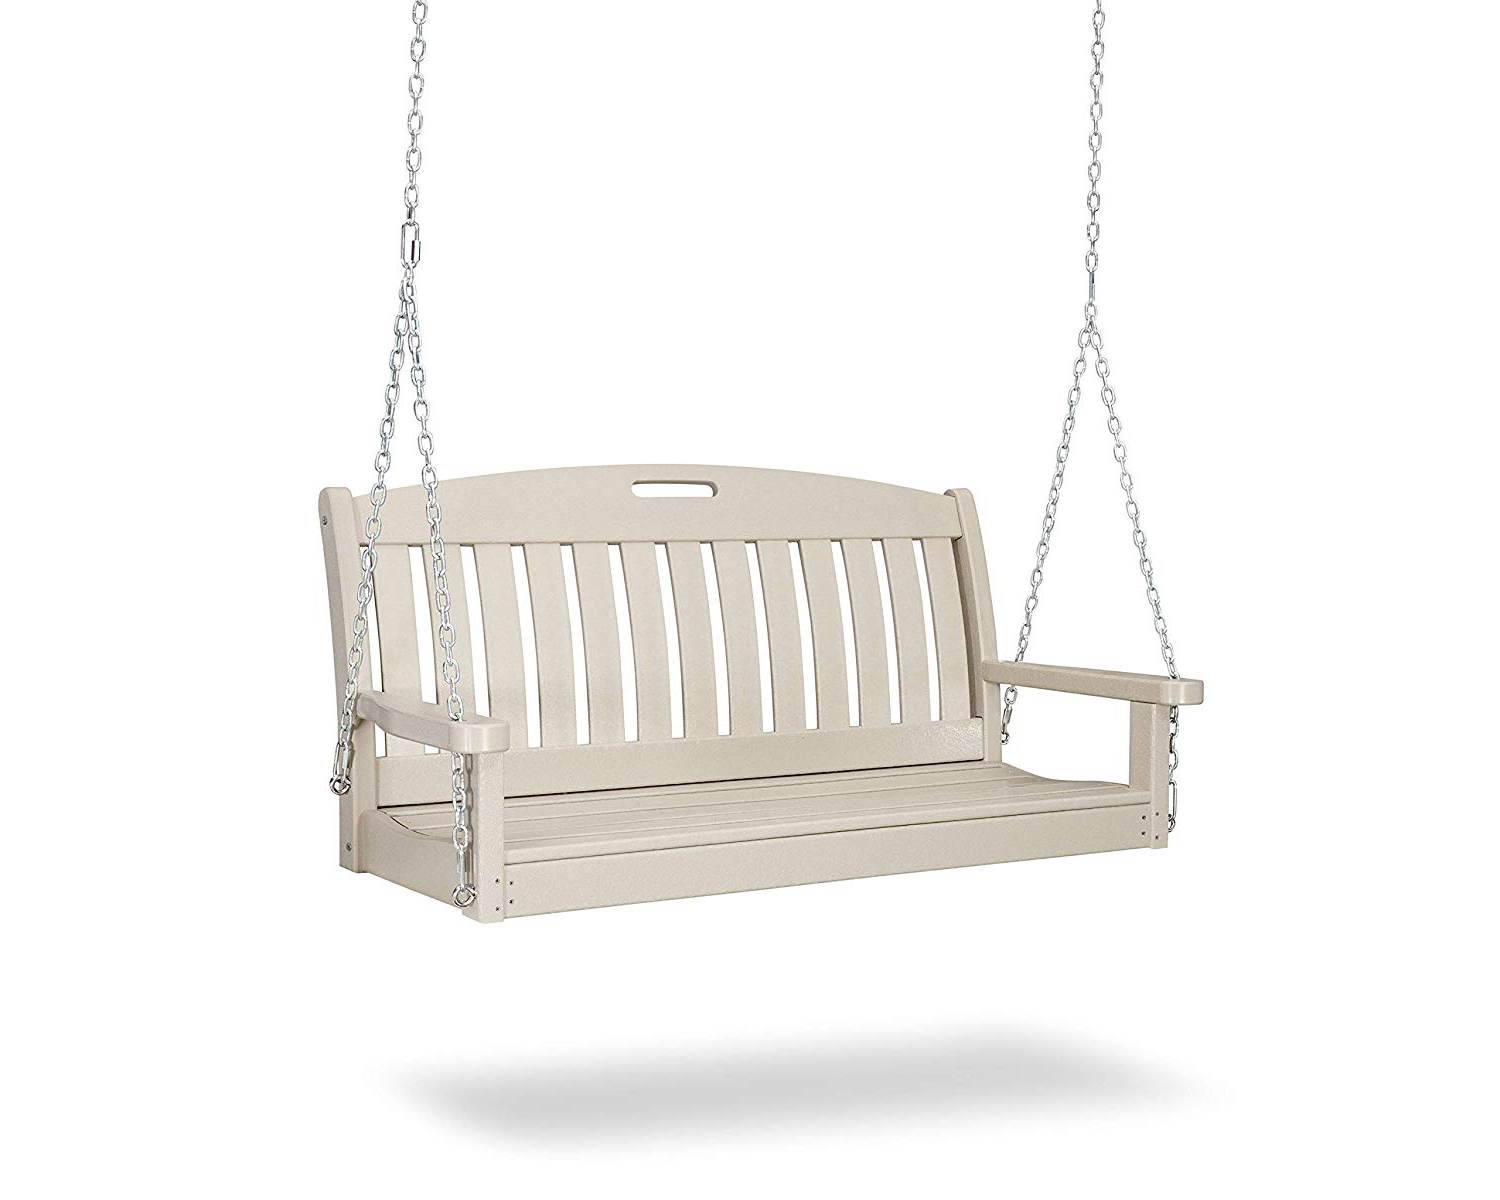 "Current Polywood Ns48Sa Nautical 48"" Swing, Sand Within Outdoor Furniture Yacht Club 2 Person Recycled Plastic Outdoor Swings (Gallery 2 of 30)"